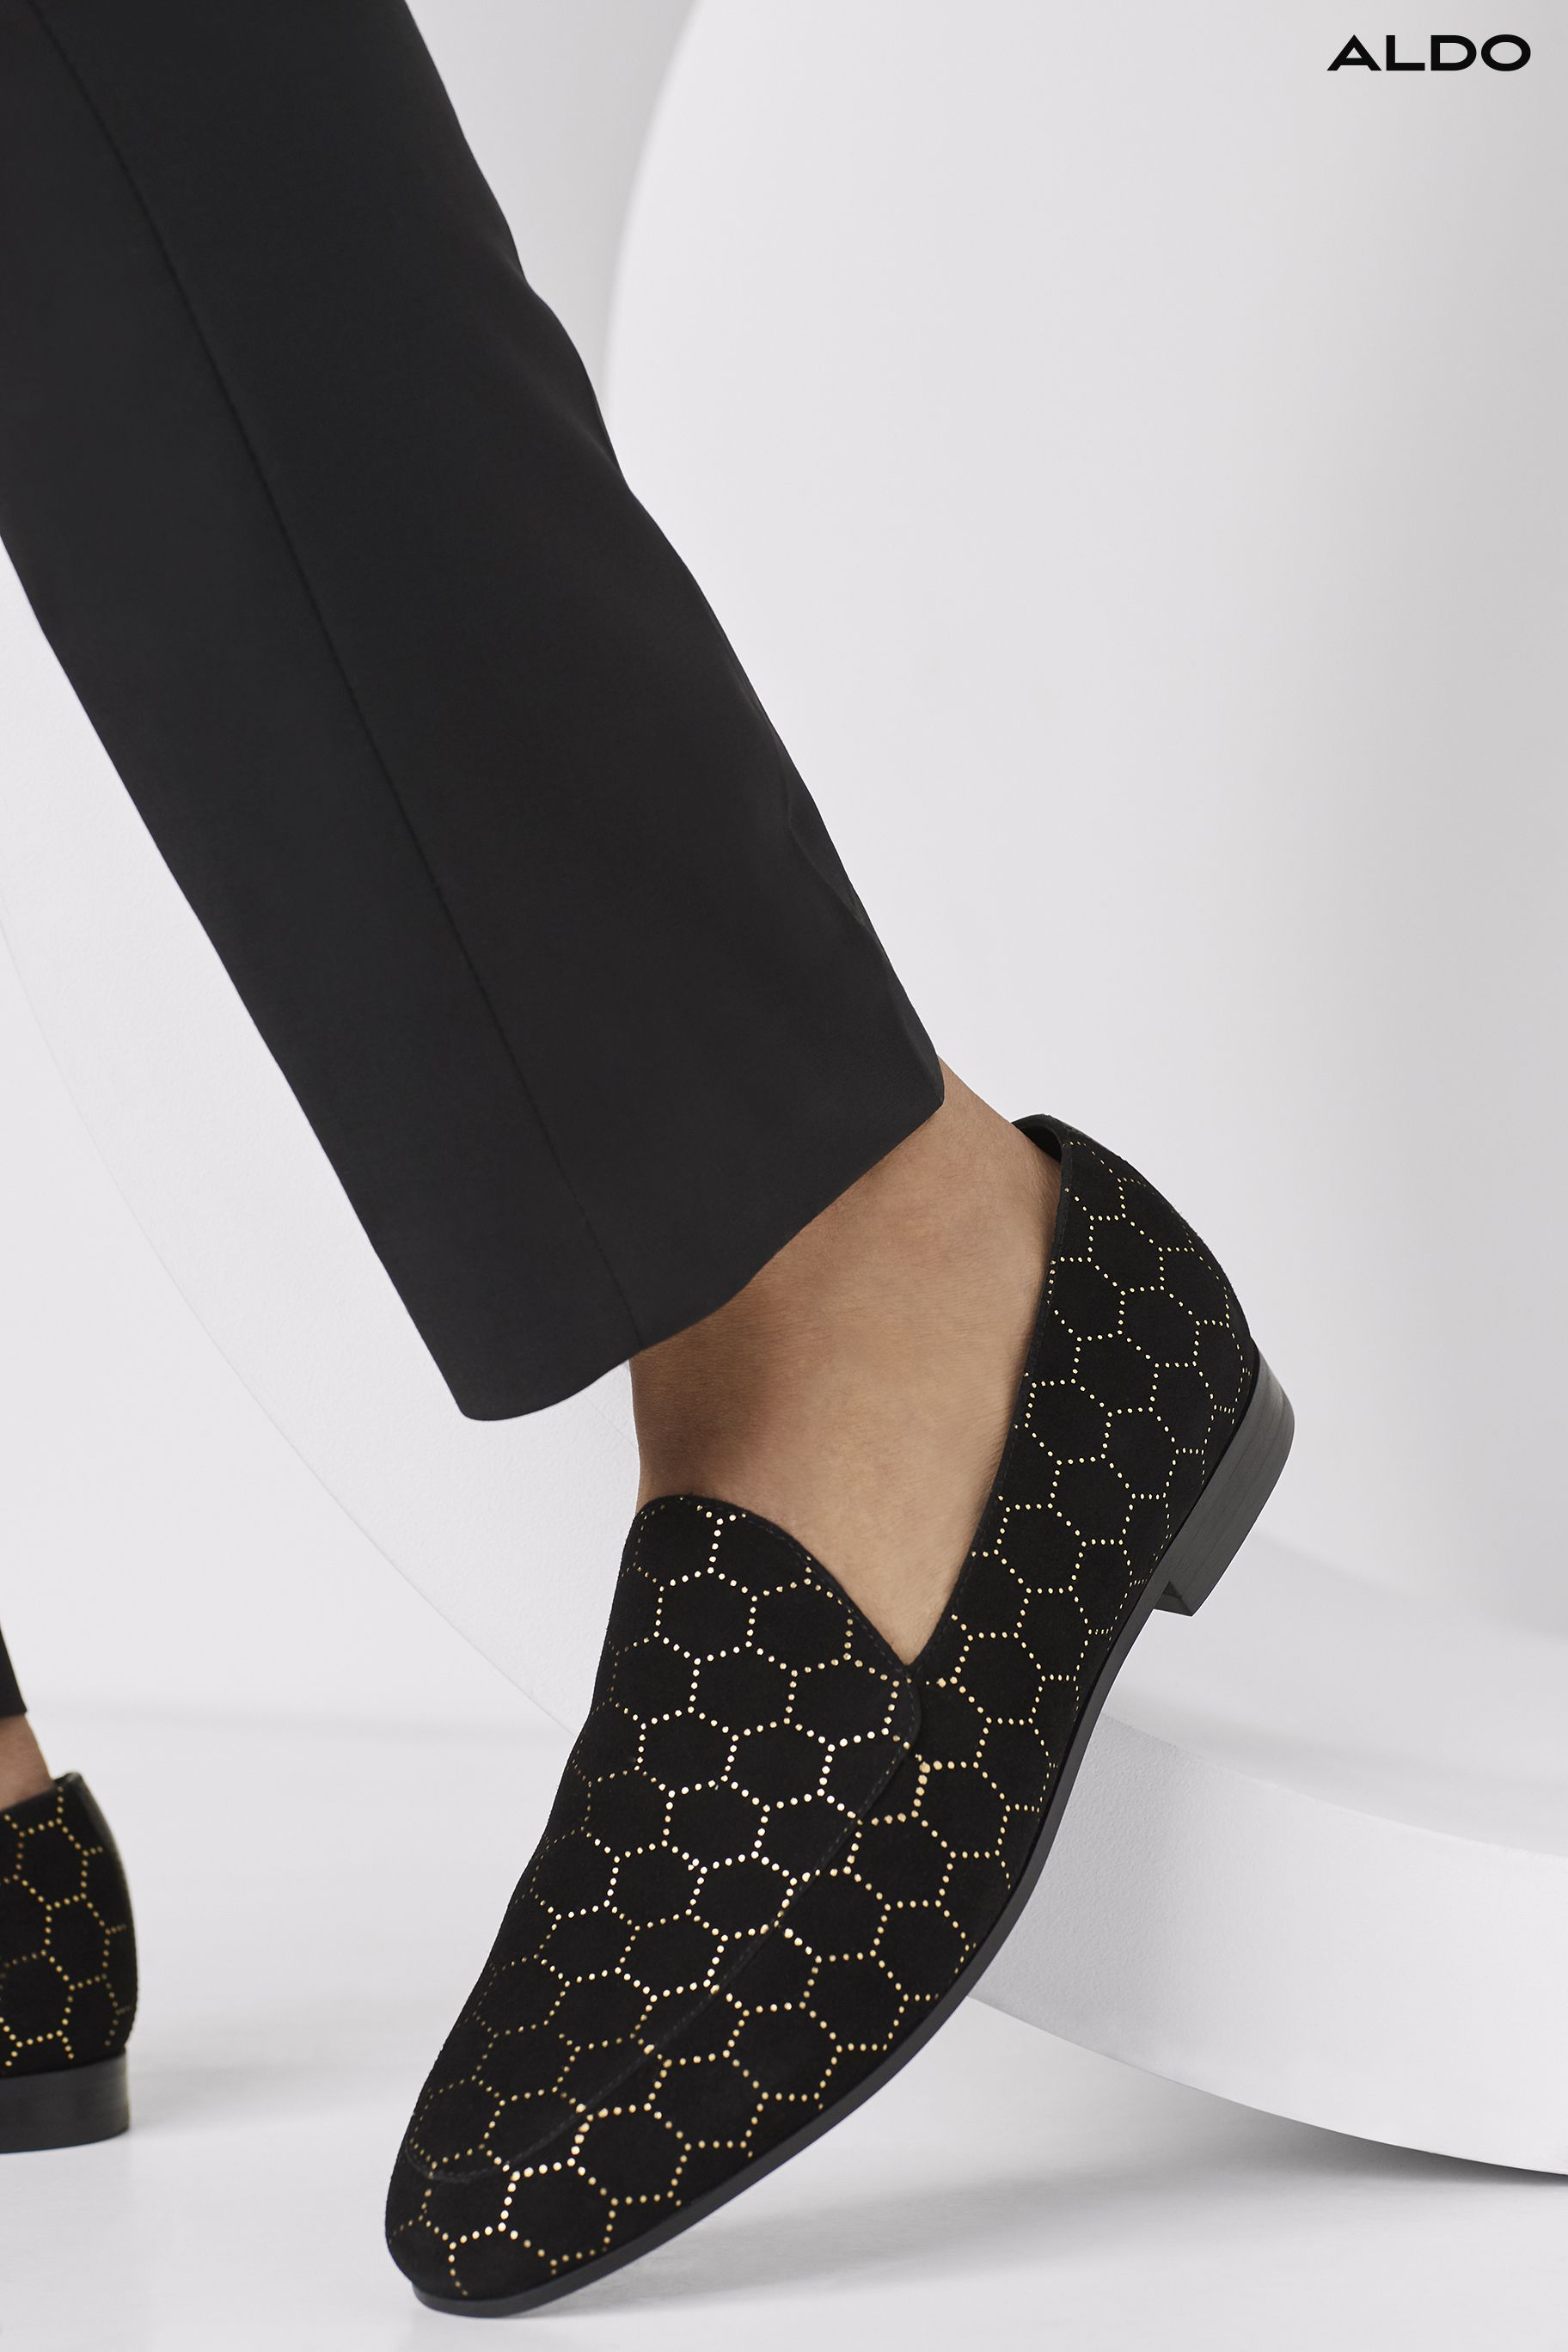 Get Holiday ready with Aldo Shoes